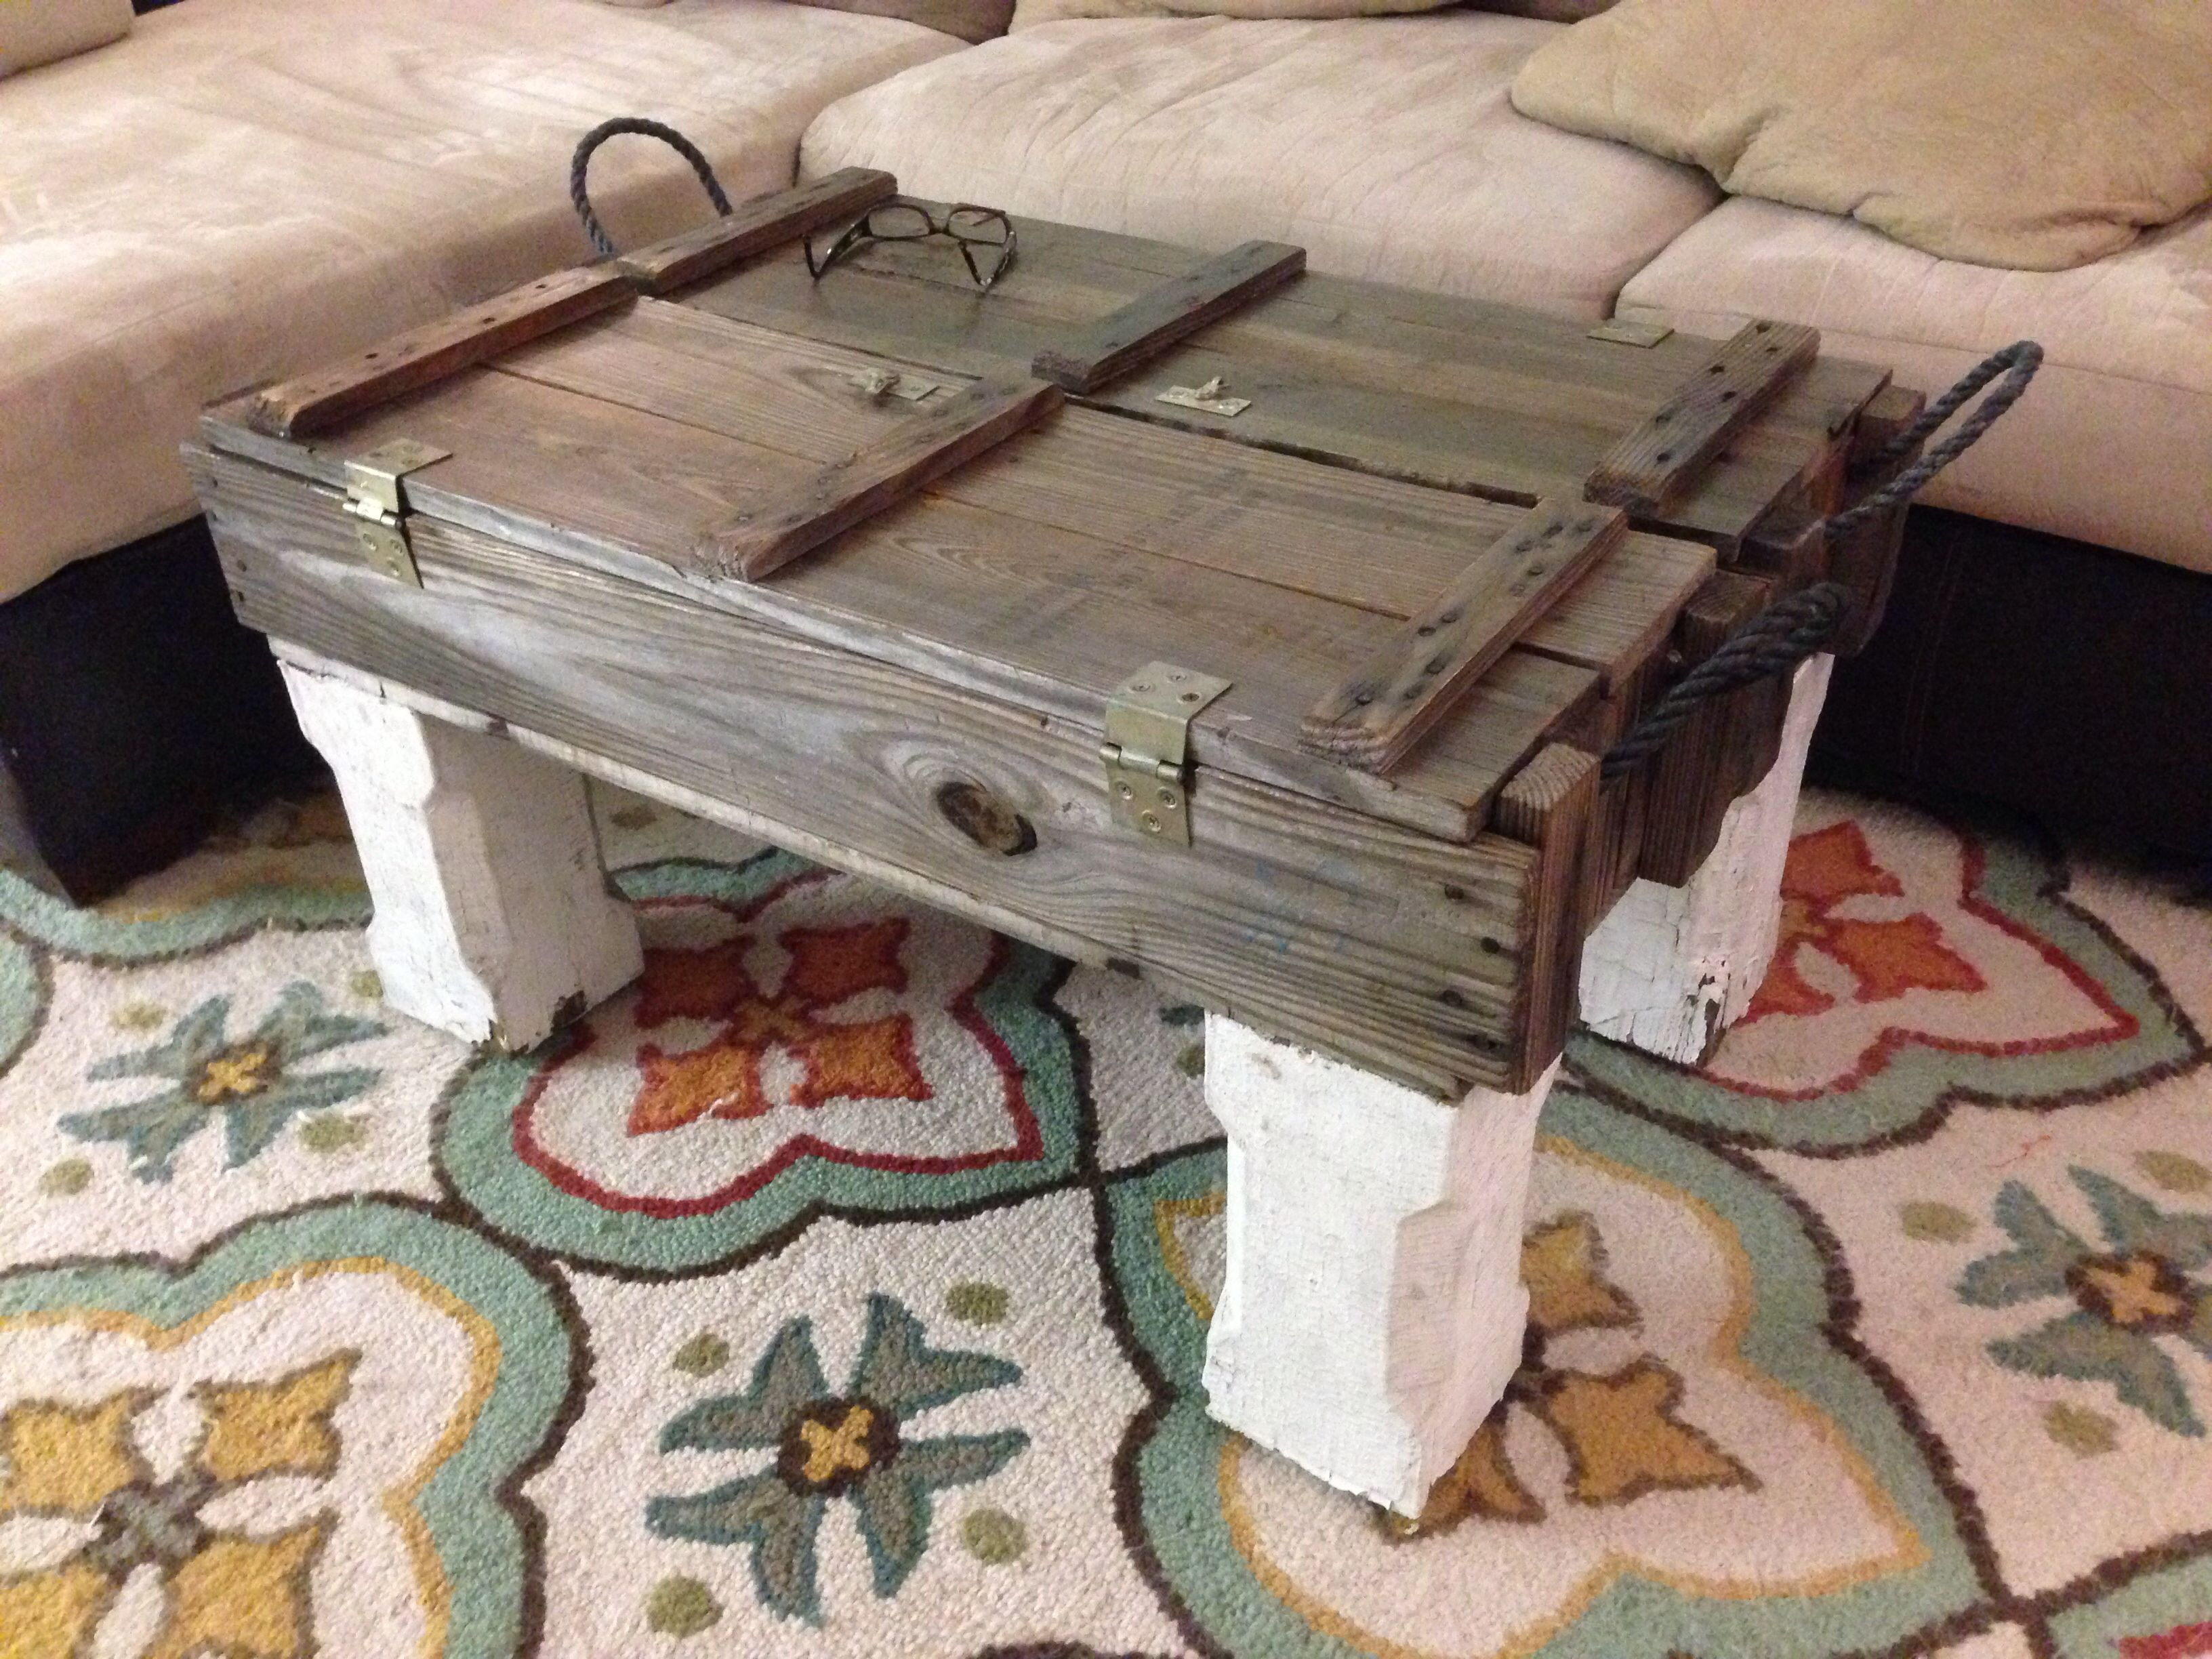 New ammo box coffee table with legs made from porch posts from